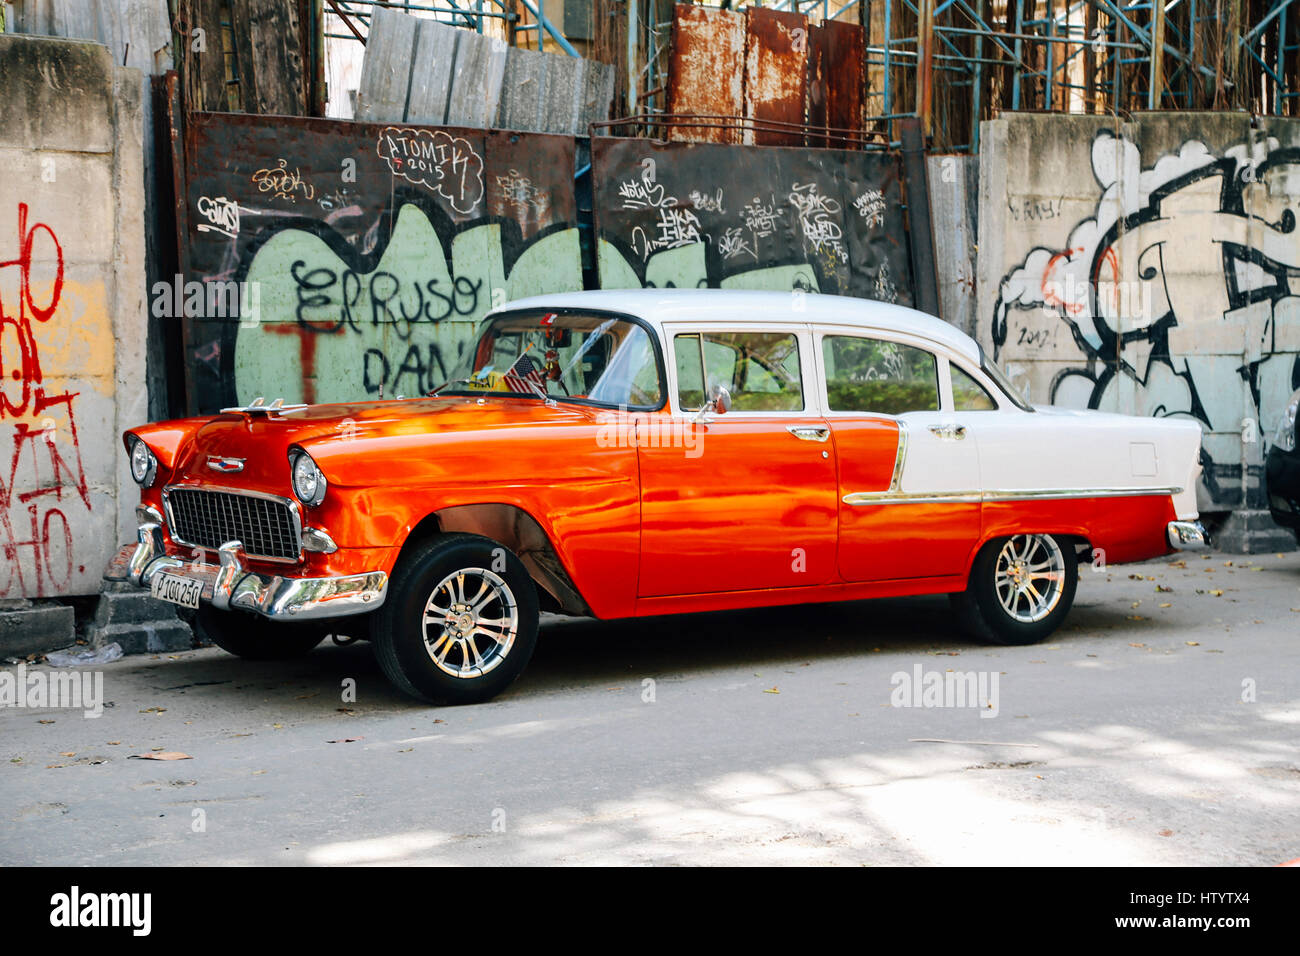 Two Tone Car Stock Photos & Two Tone Car Stock Images - Alamy